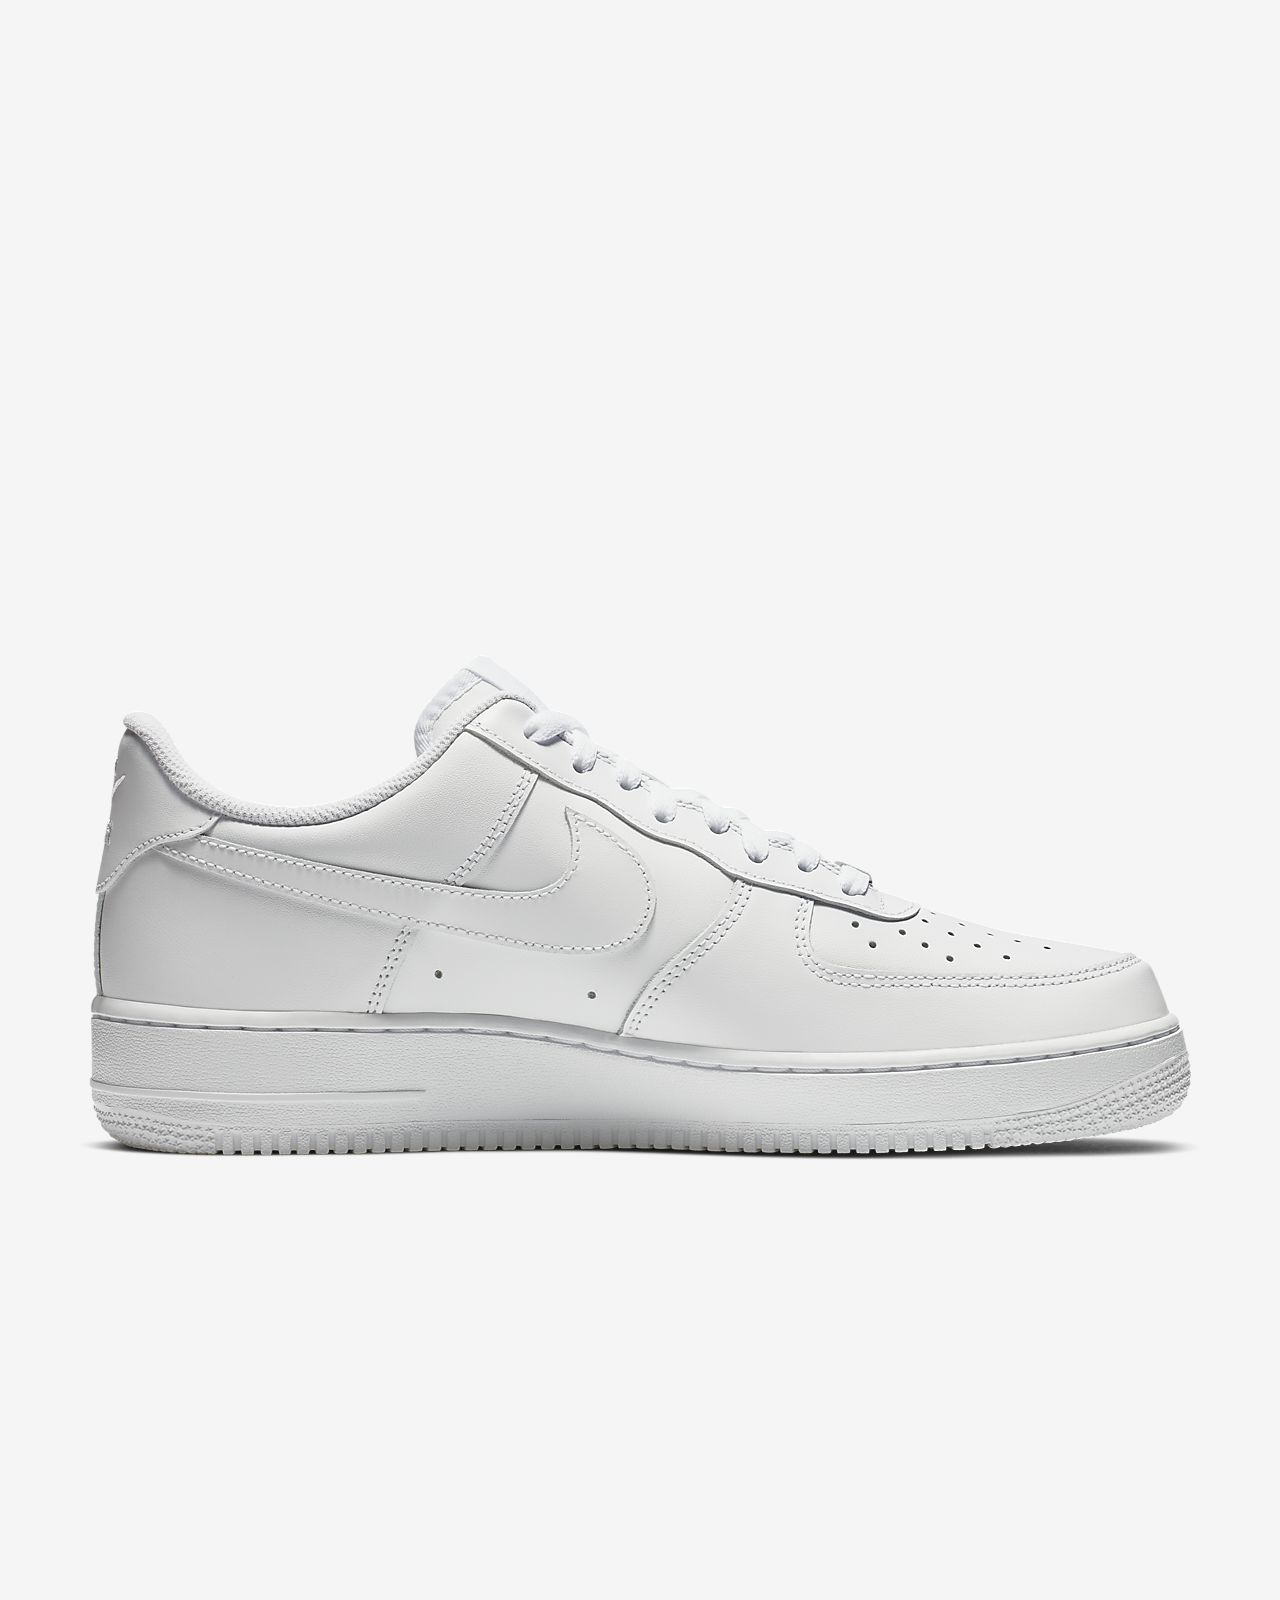 078b76d9b27c Low Resolution Nike Air Force 1  07 Shoe Nike Air Force 1  07 Shoe